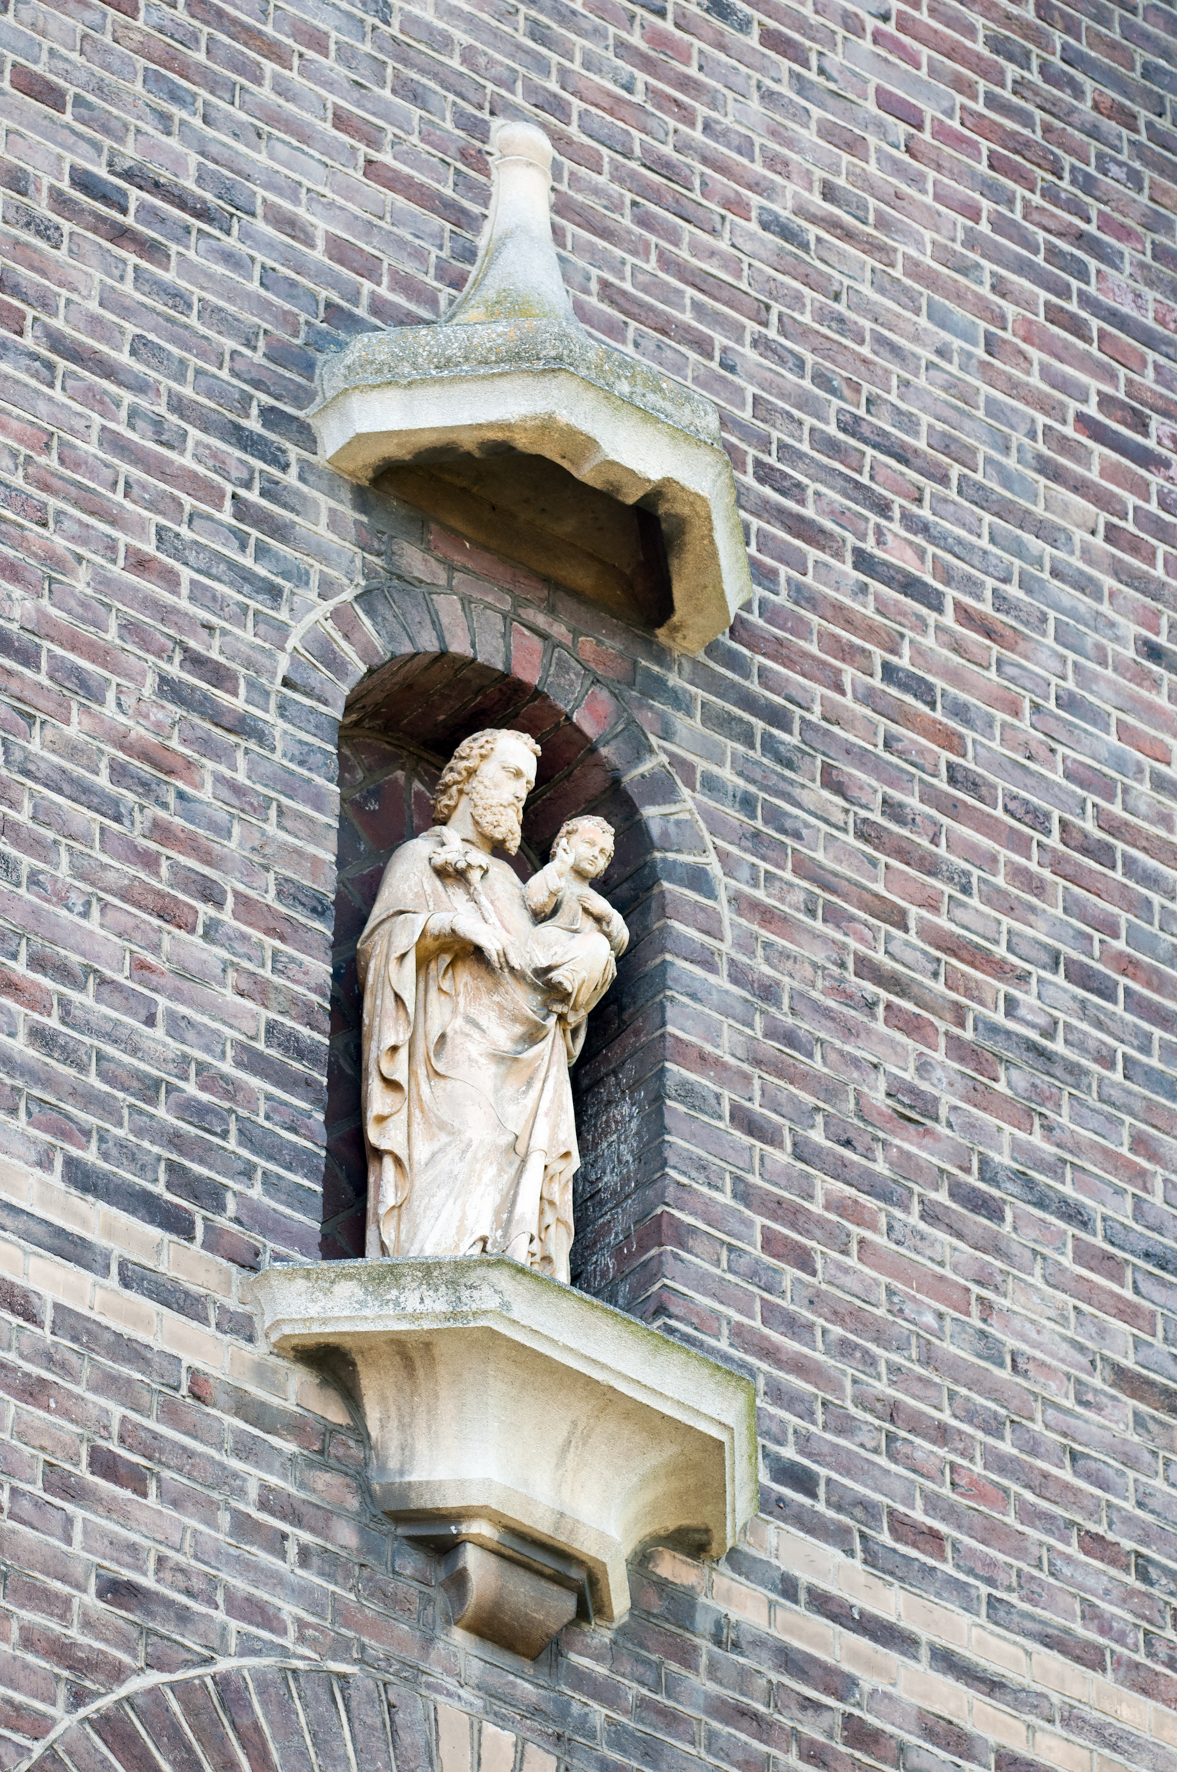 Rector_Driessenstraat-9.jpg